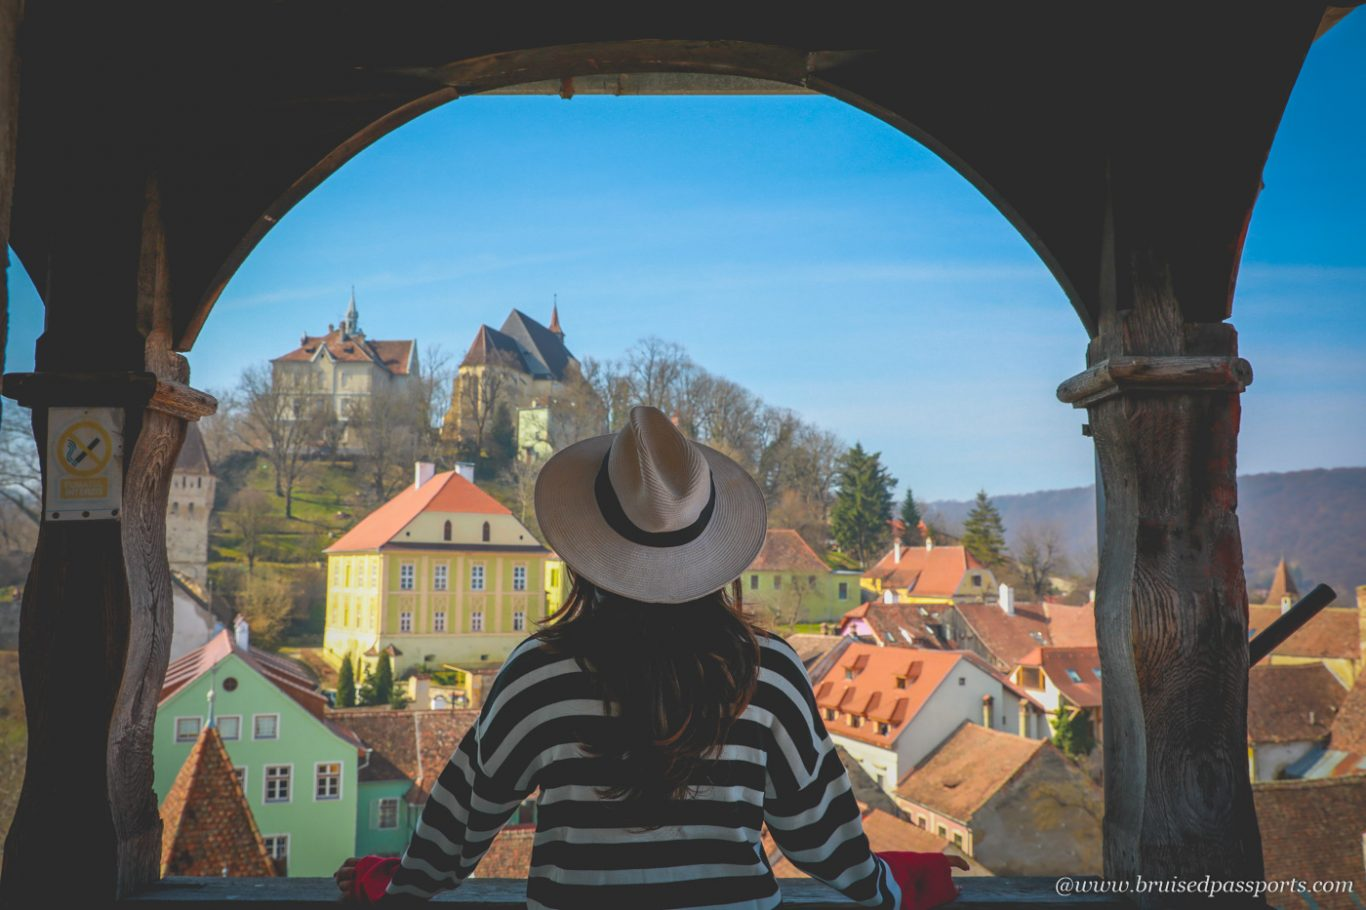 Sighisoara clock tower view